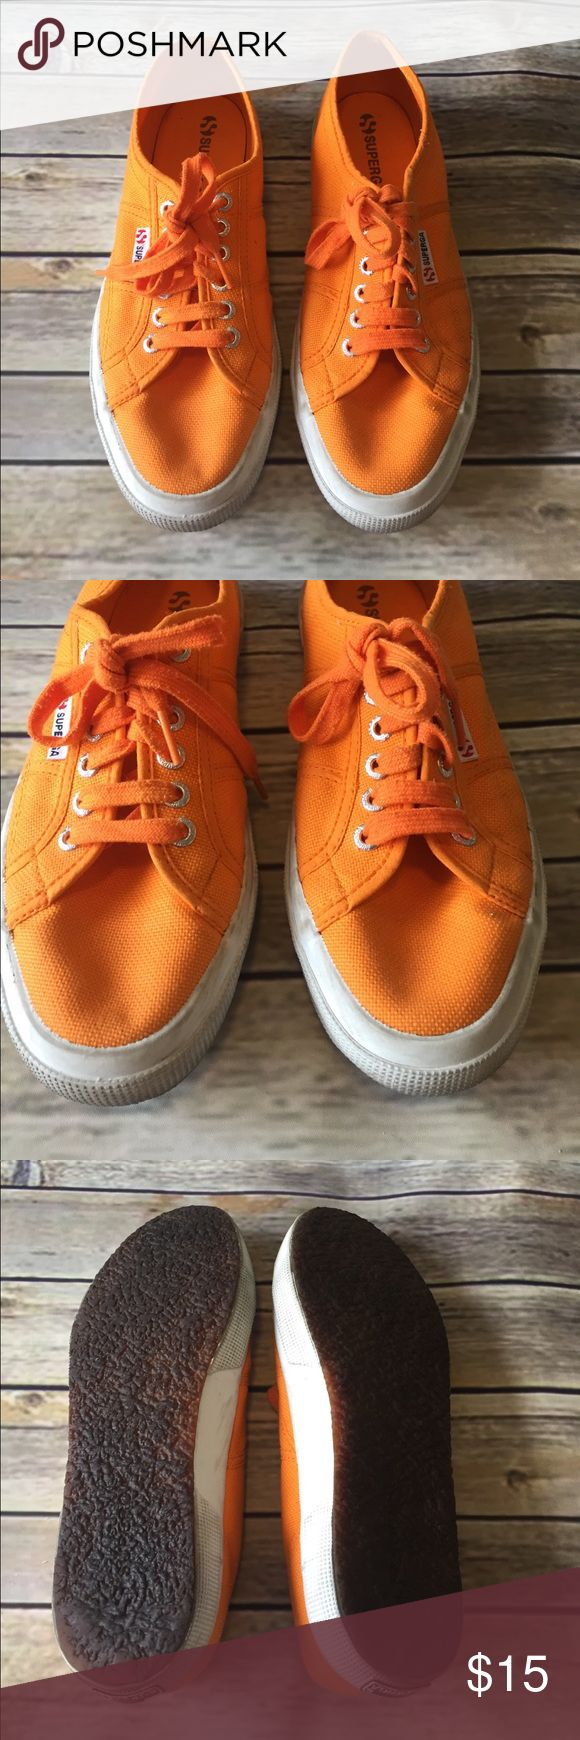 GUC SUPERGA sneakers GUC SUPERGA sneakers with minimal wear in bright orange.  Women's size 10.   Only problem with fabric portion is some marks along back as shown.  Rest has no staining.  Worn infrequently.   Pet/smoke free home. Superga Shoes